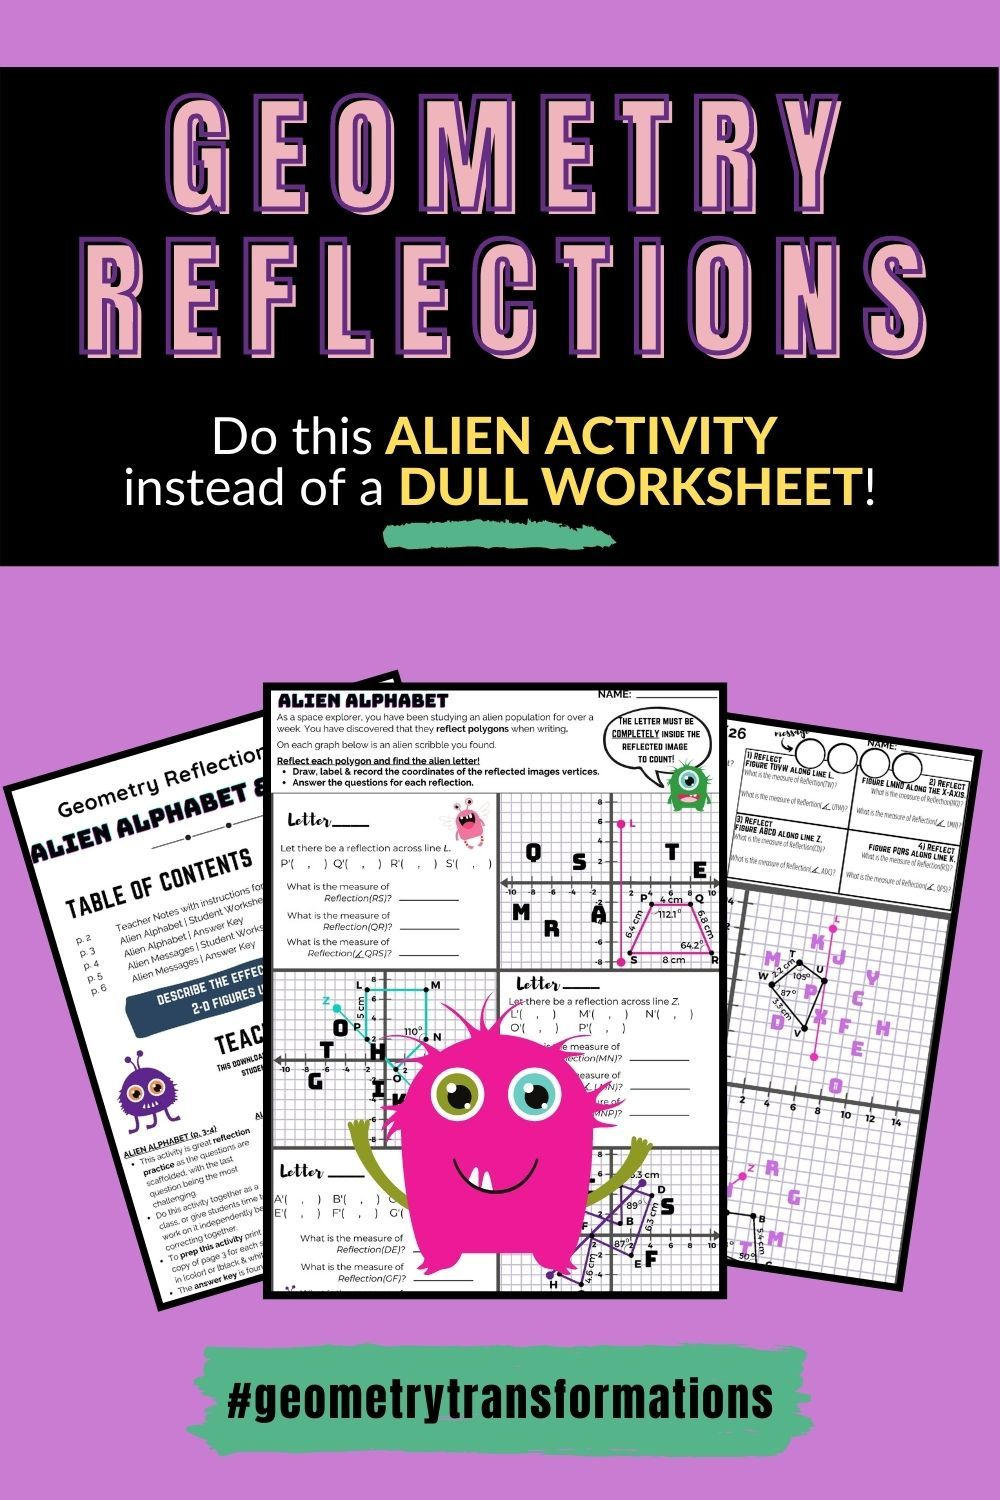 Geometry Transformations Reflection Activity For Middle School Reflection Activities Maths Activities Middle School Geometry Activities High School